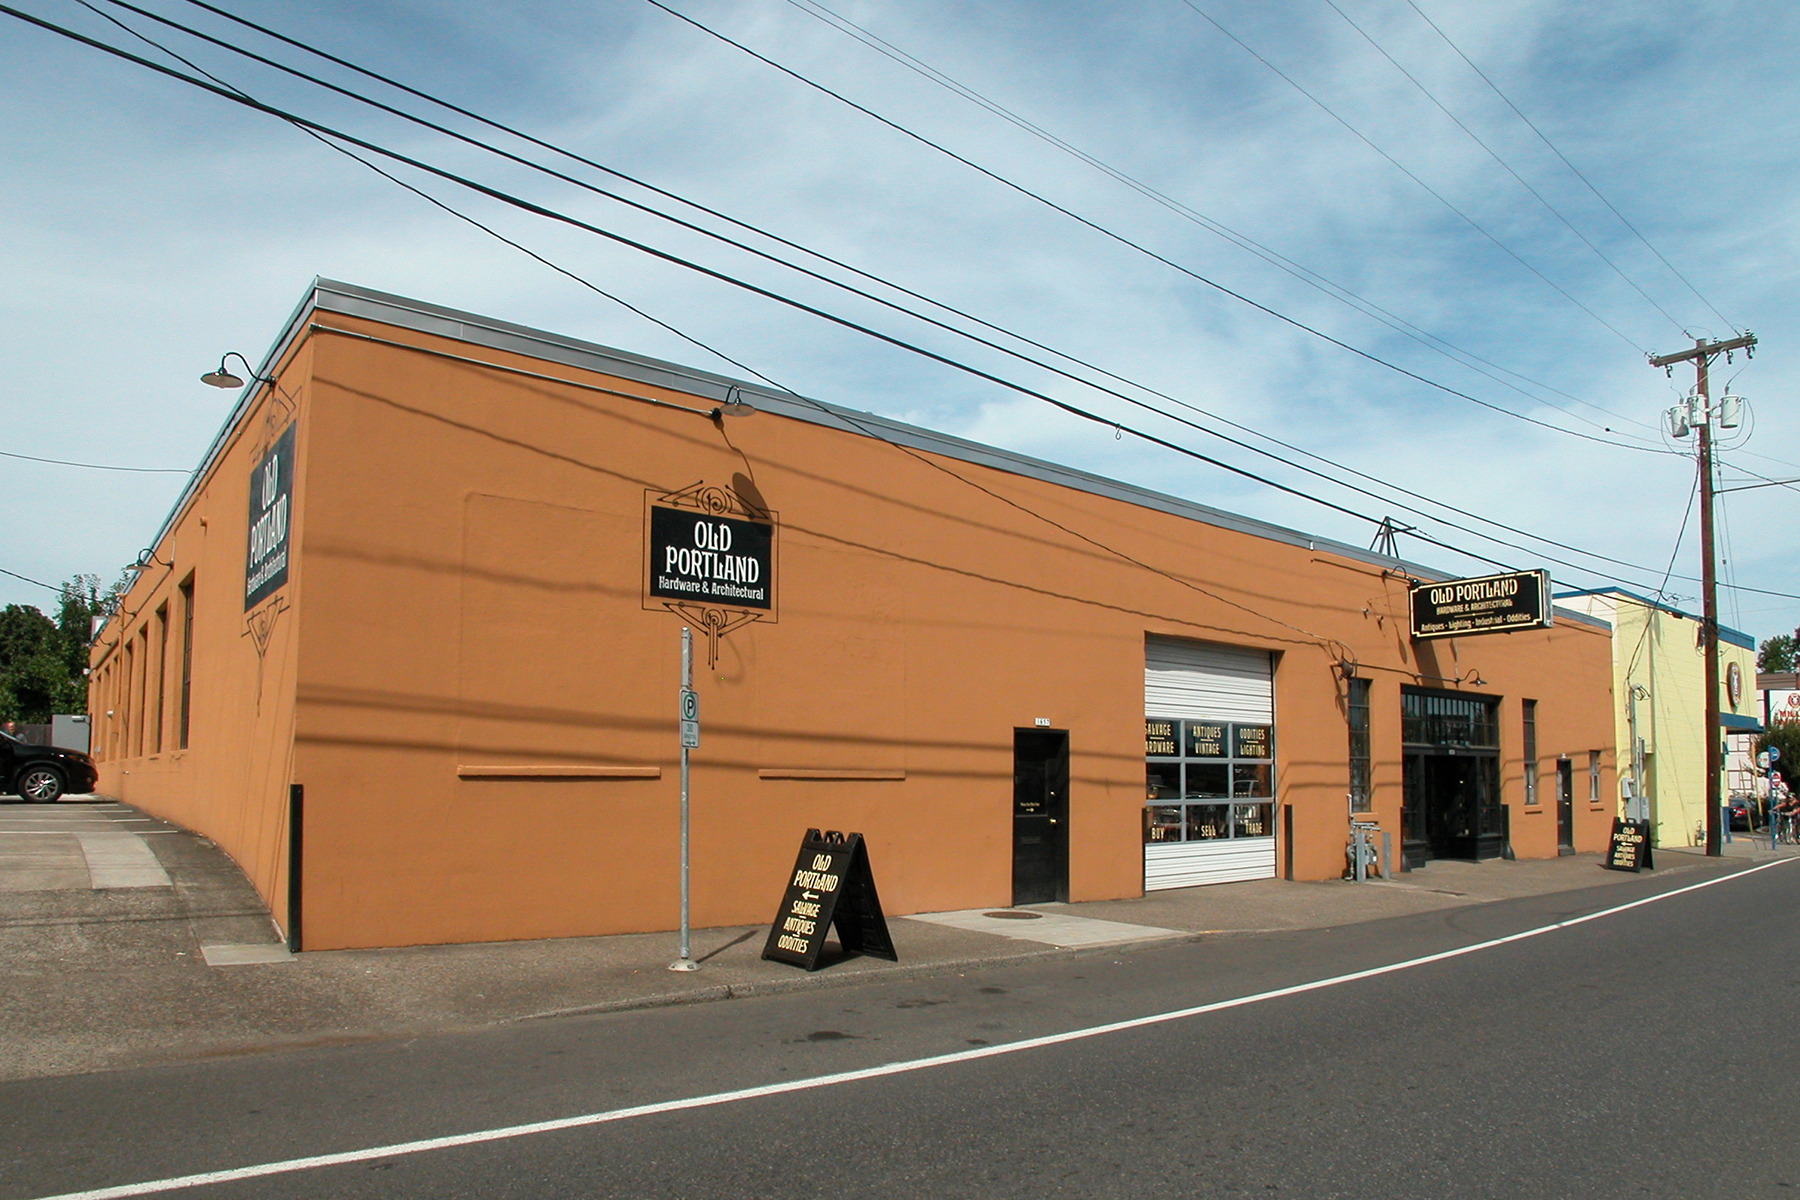 Freshly painted exterior of commercial building